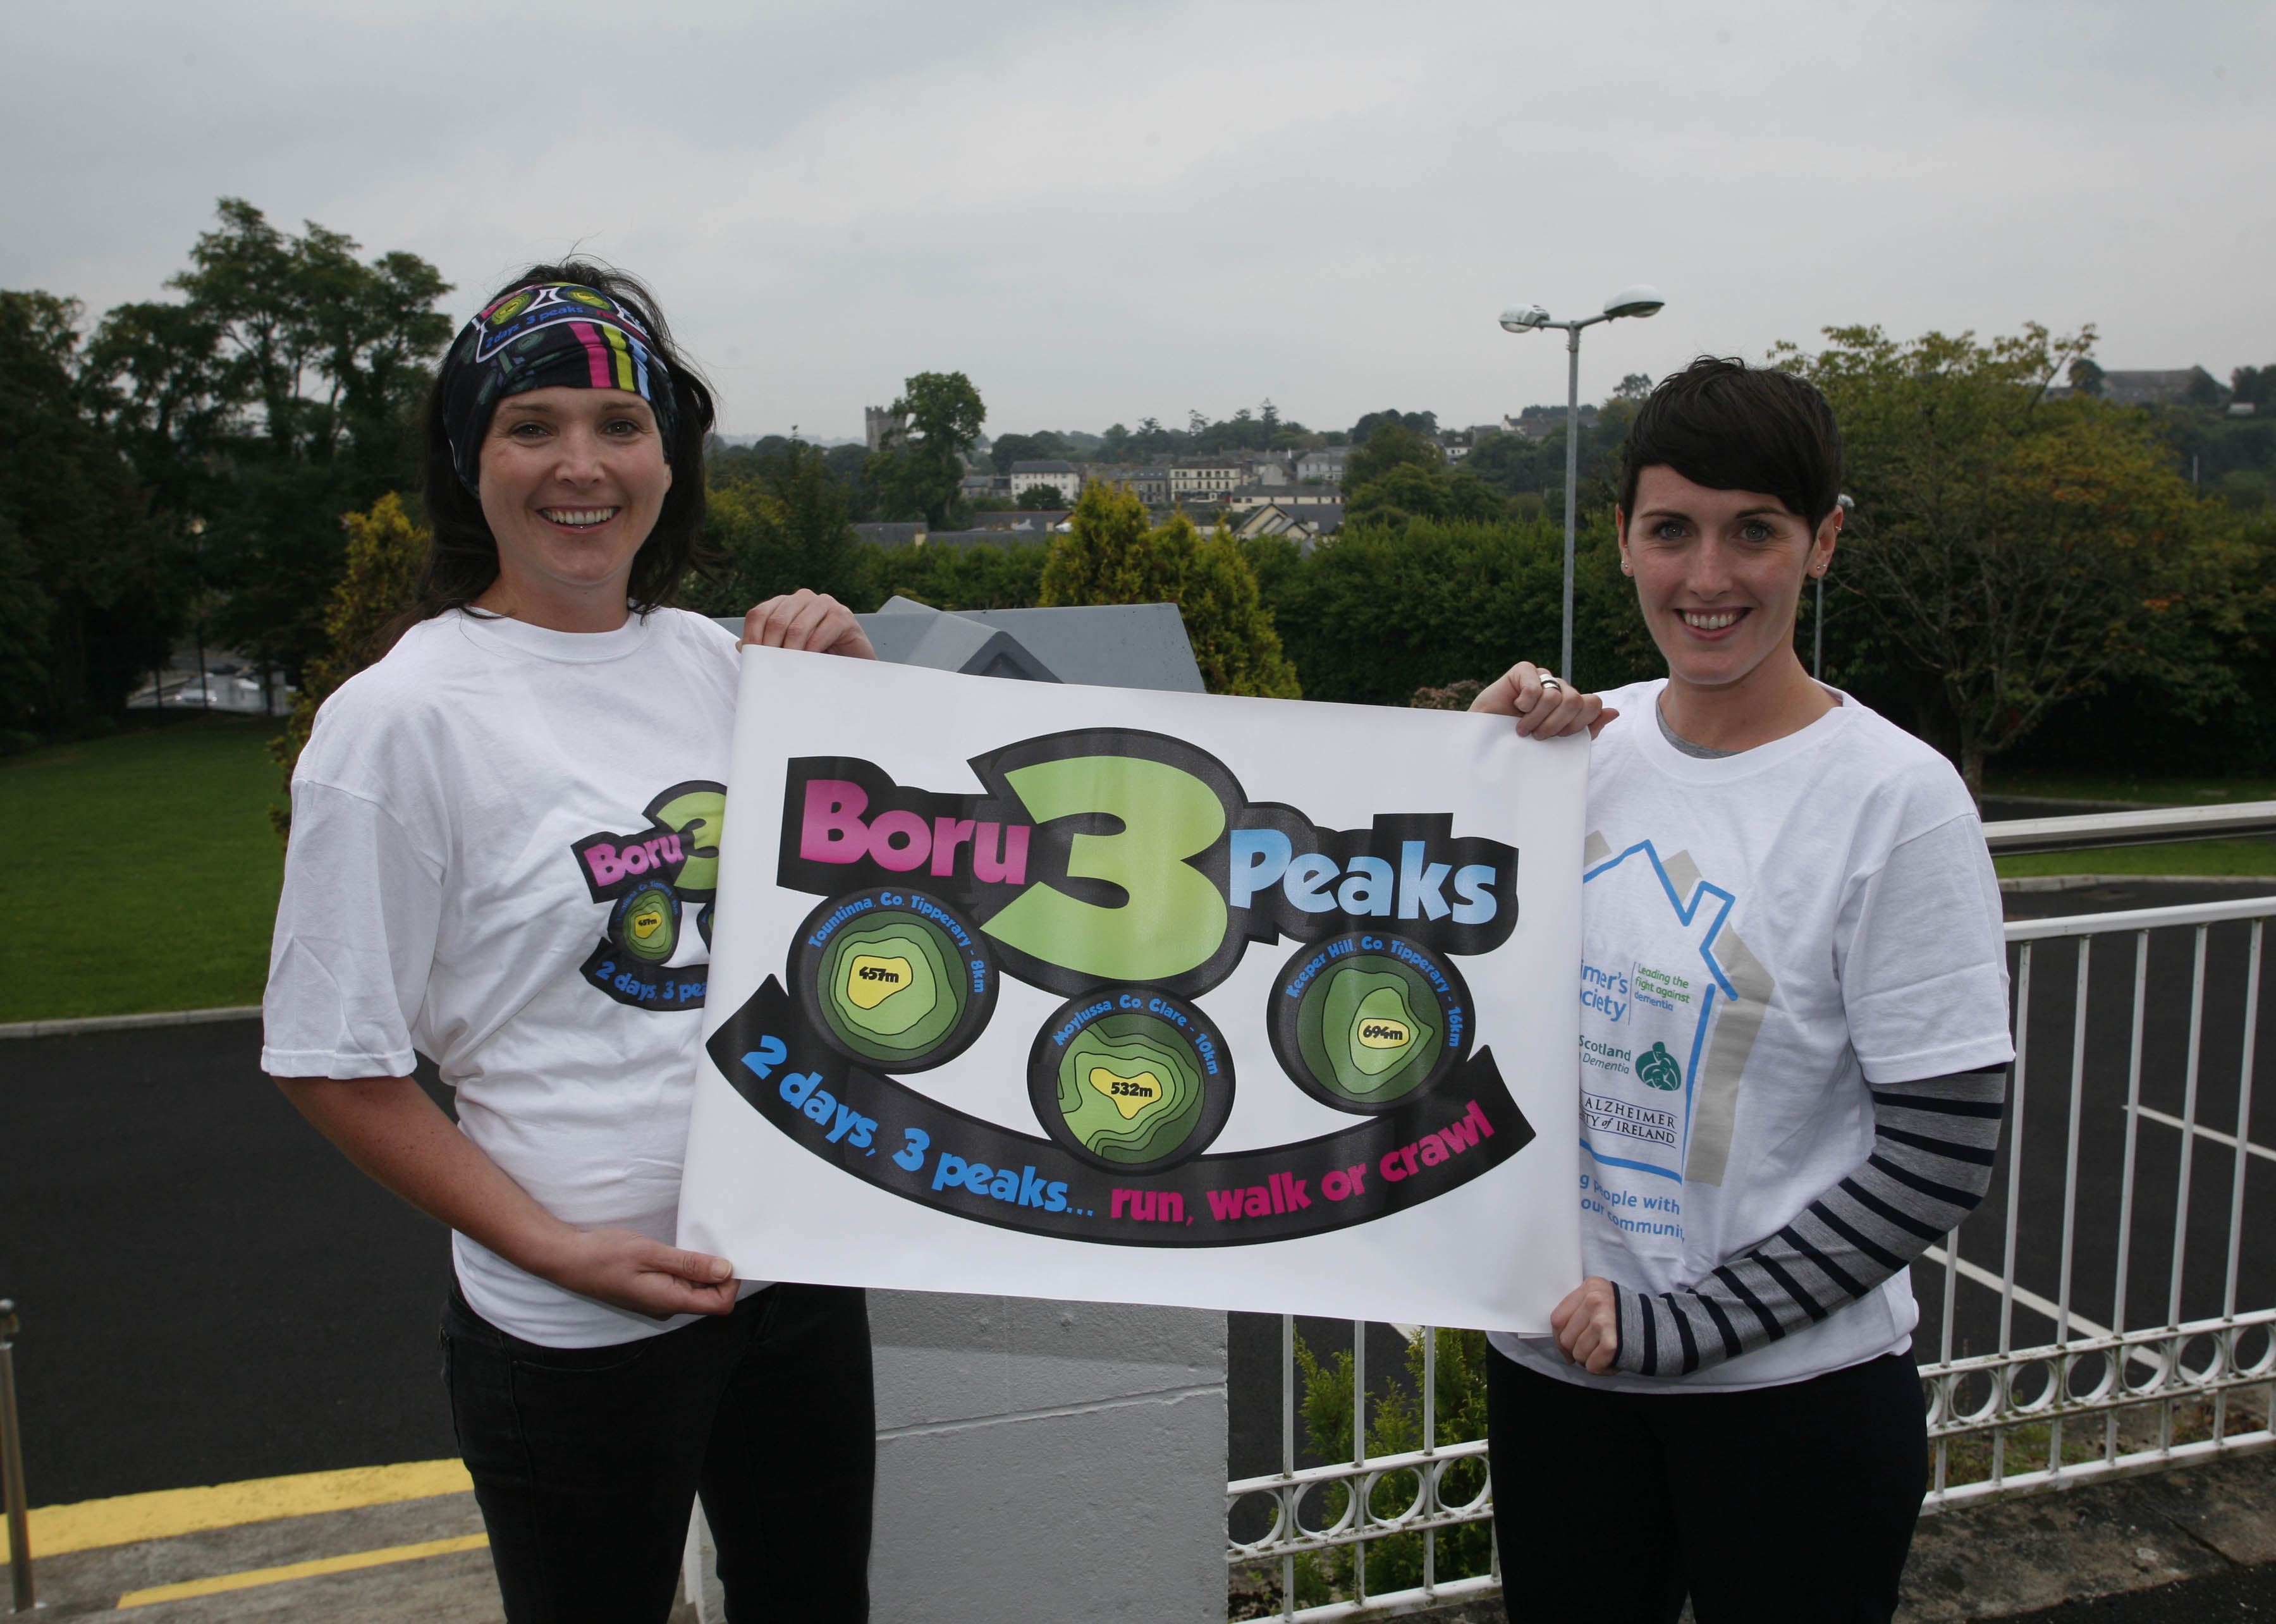 Orla Foley, Chairperson Boru 3 Peaks and Aifric Devane Assistant Director of Nursing at Watermans Day Care Centre for Alzheimers Ireland, Killaloe. Pictured at the launch of Boru 3 Peaks 2014.